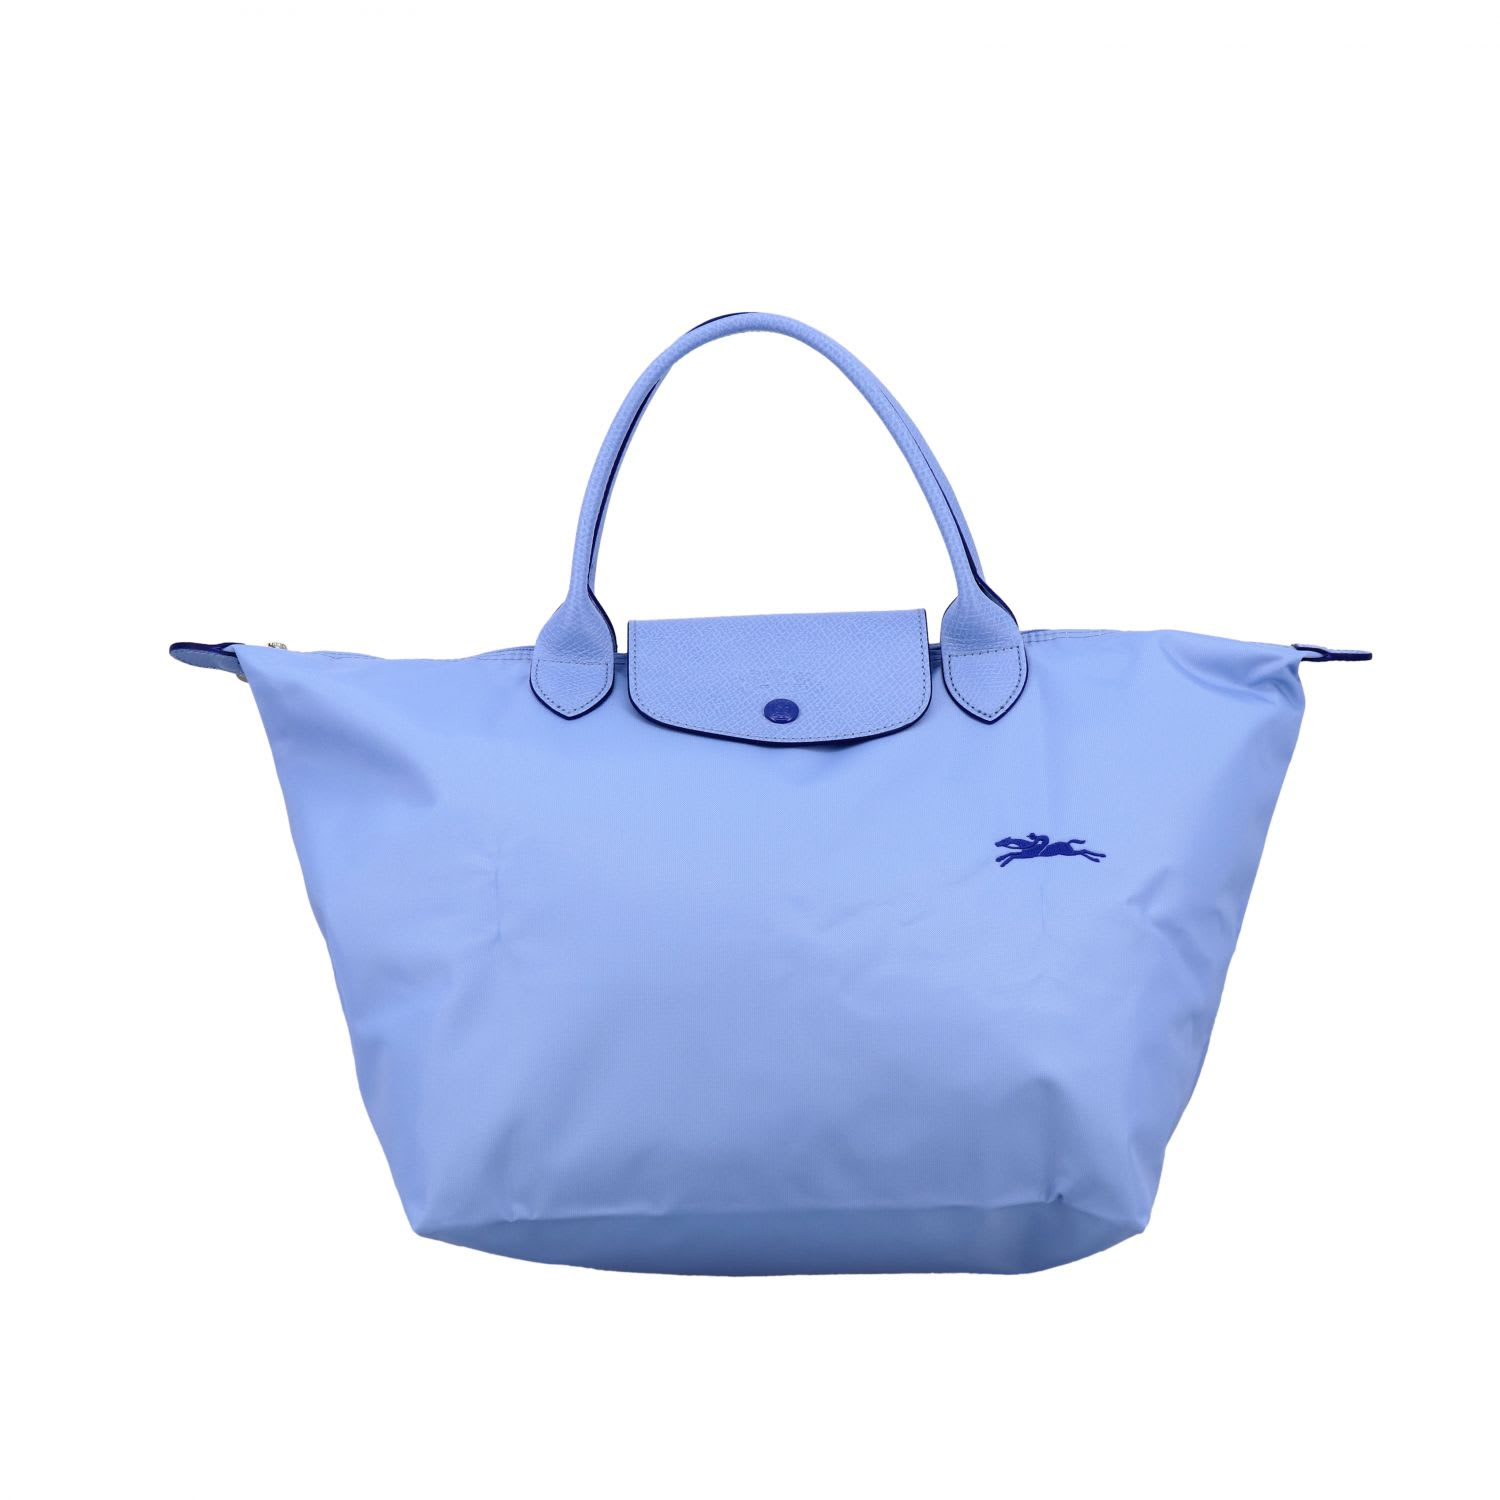 Longchamp Bag In Nylon With Embroidered Logo In Gnawed Blue